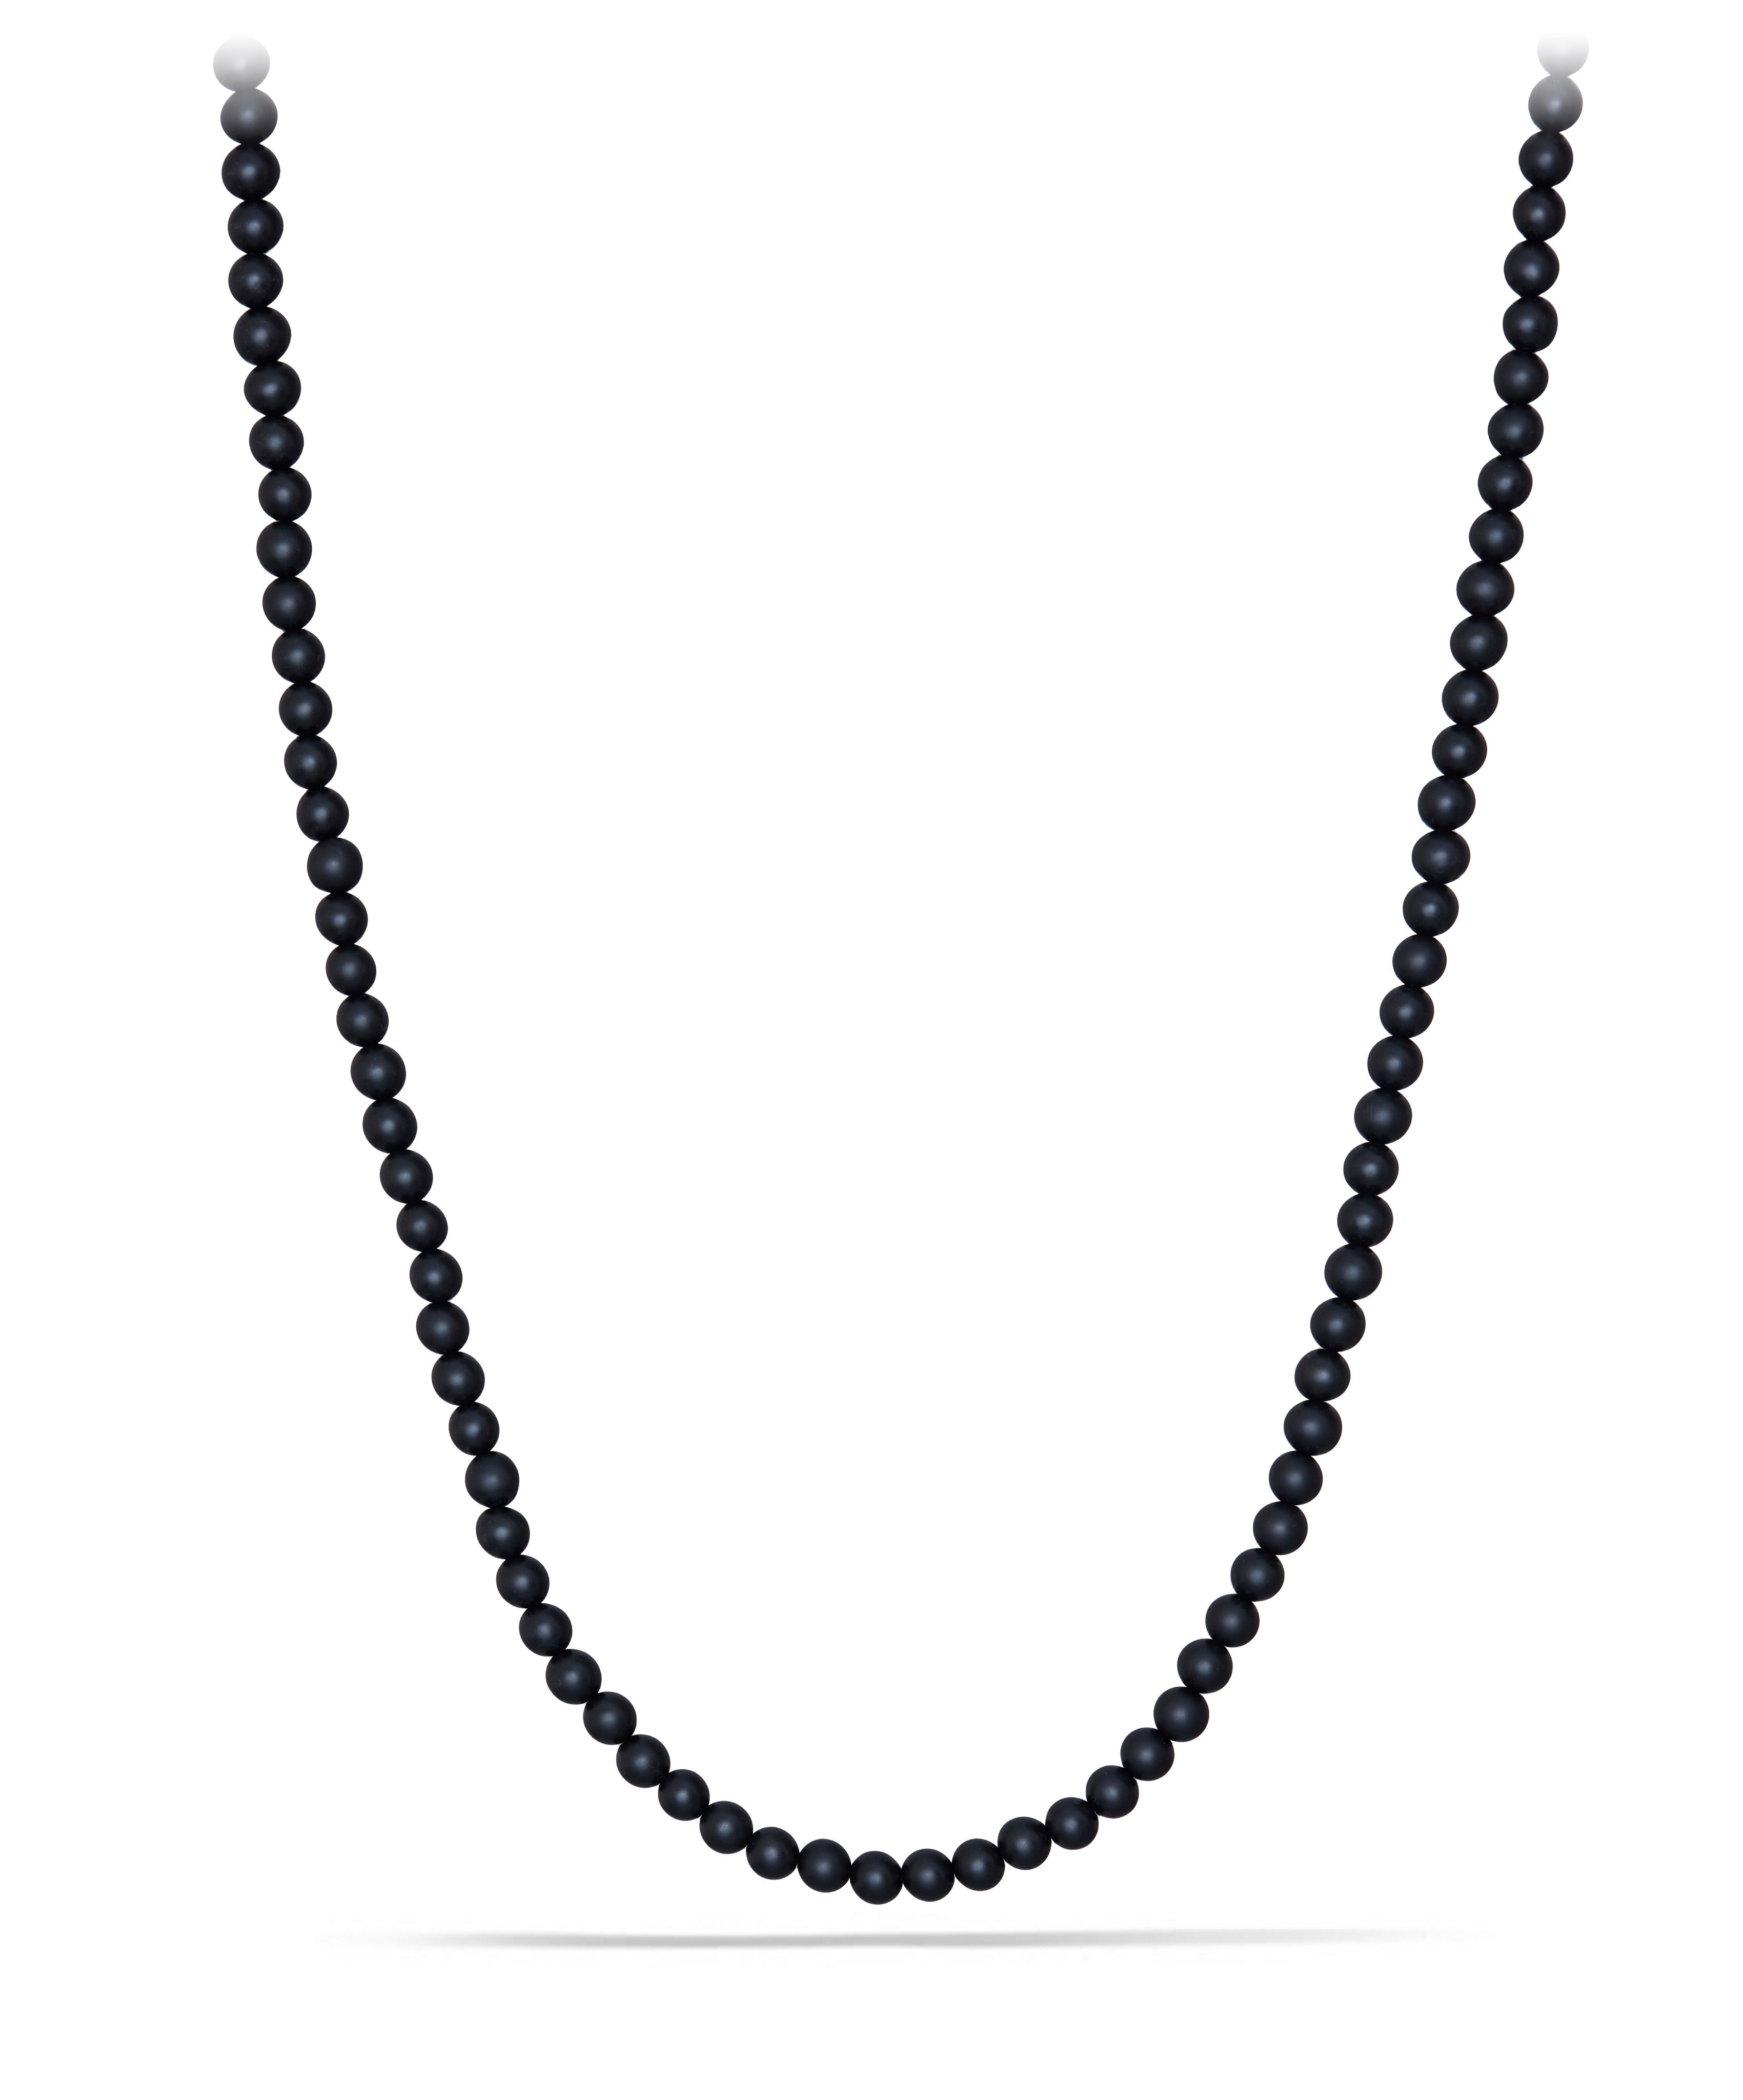 Spiritual Necklace, Black Onyx